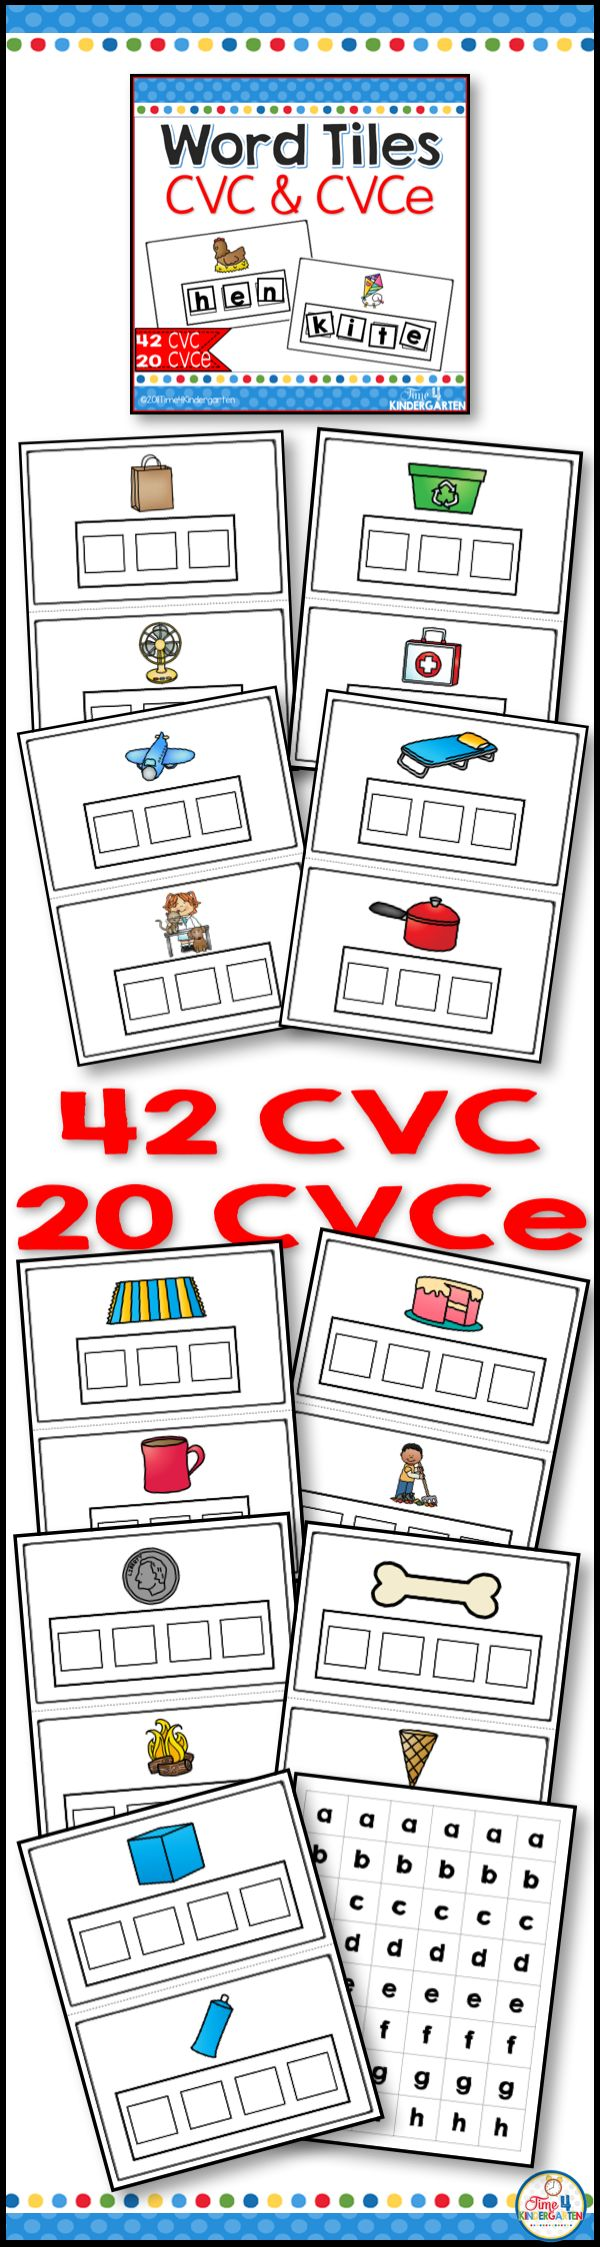 Word tiles CVC and CVCE literacy center activities.  These fun and engaging word tile mats are great for building phonemic awareness with kindergarten students.  They can be used for RTI first and second grades too.  Students use the letter tiles to build the CVC and CVCE words your kindergarten students will be practicing their phonics, decoding and spelling skills.  Use with small groups for intervention and reteaching- great for 1st & 2nd grade, ELD, homeschool  & special education.